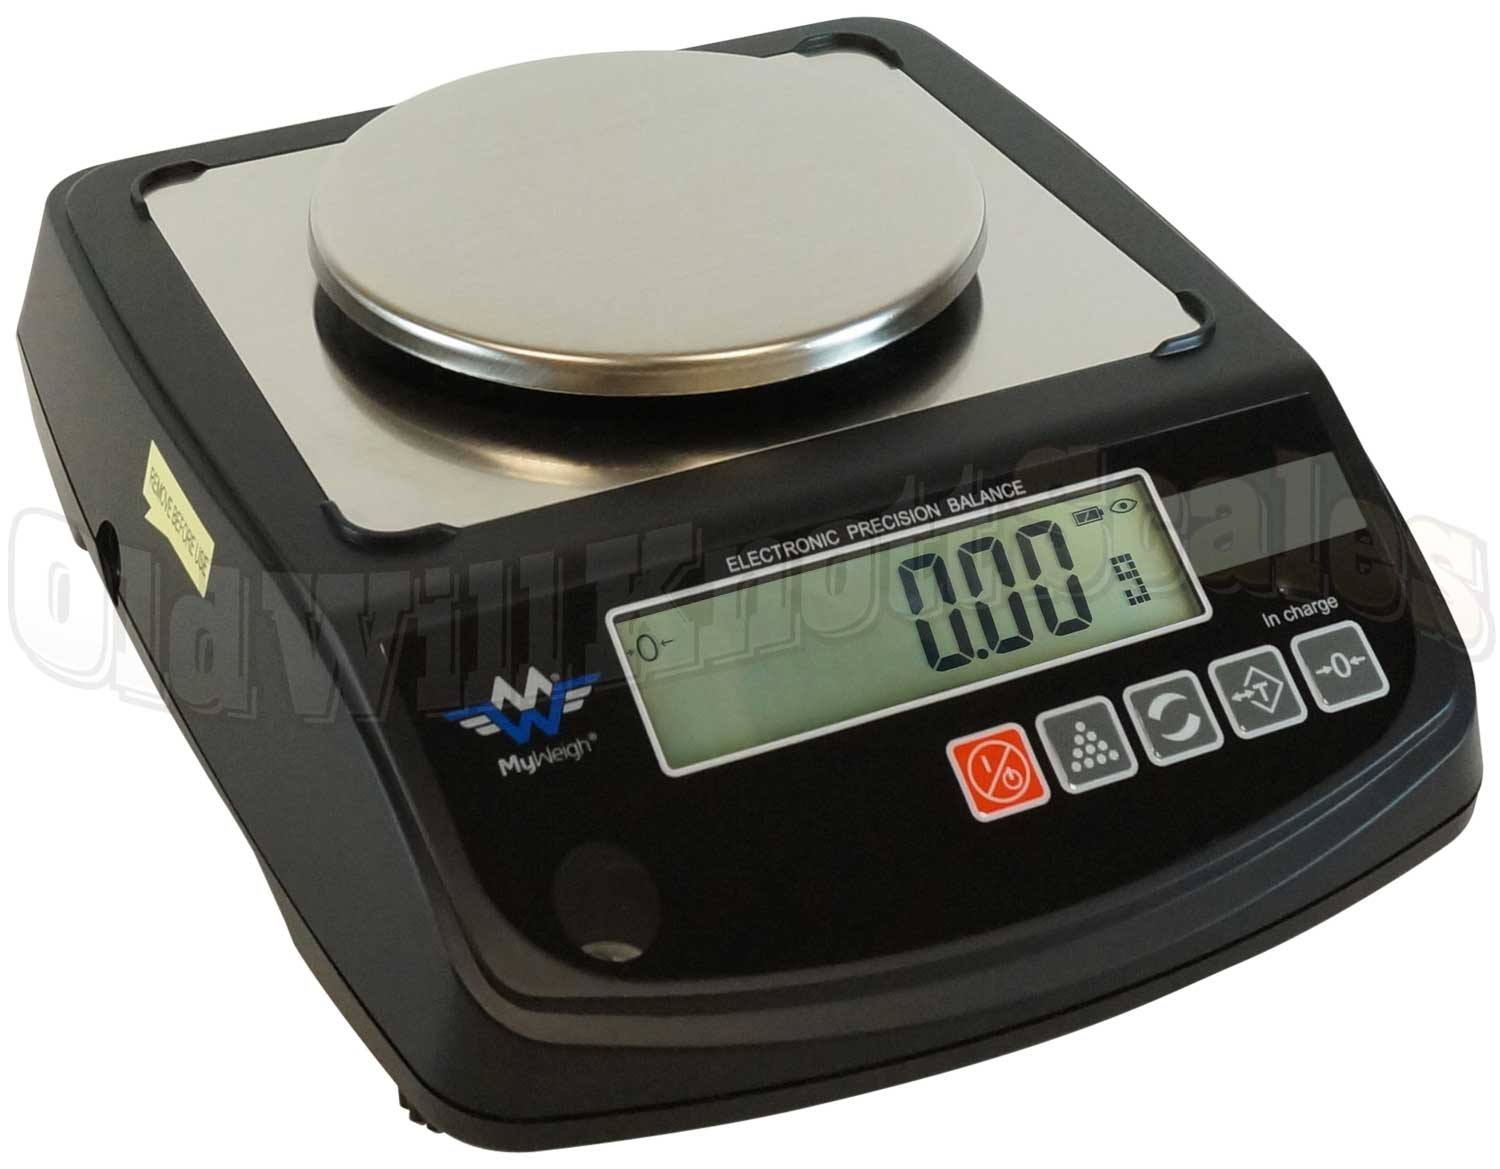 My Weigh - i601 - Without Draft Shield